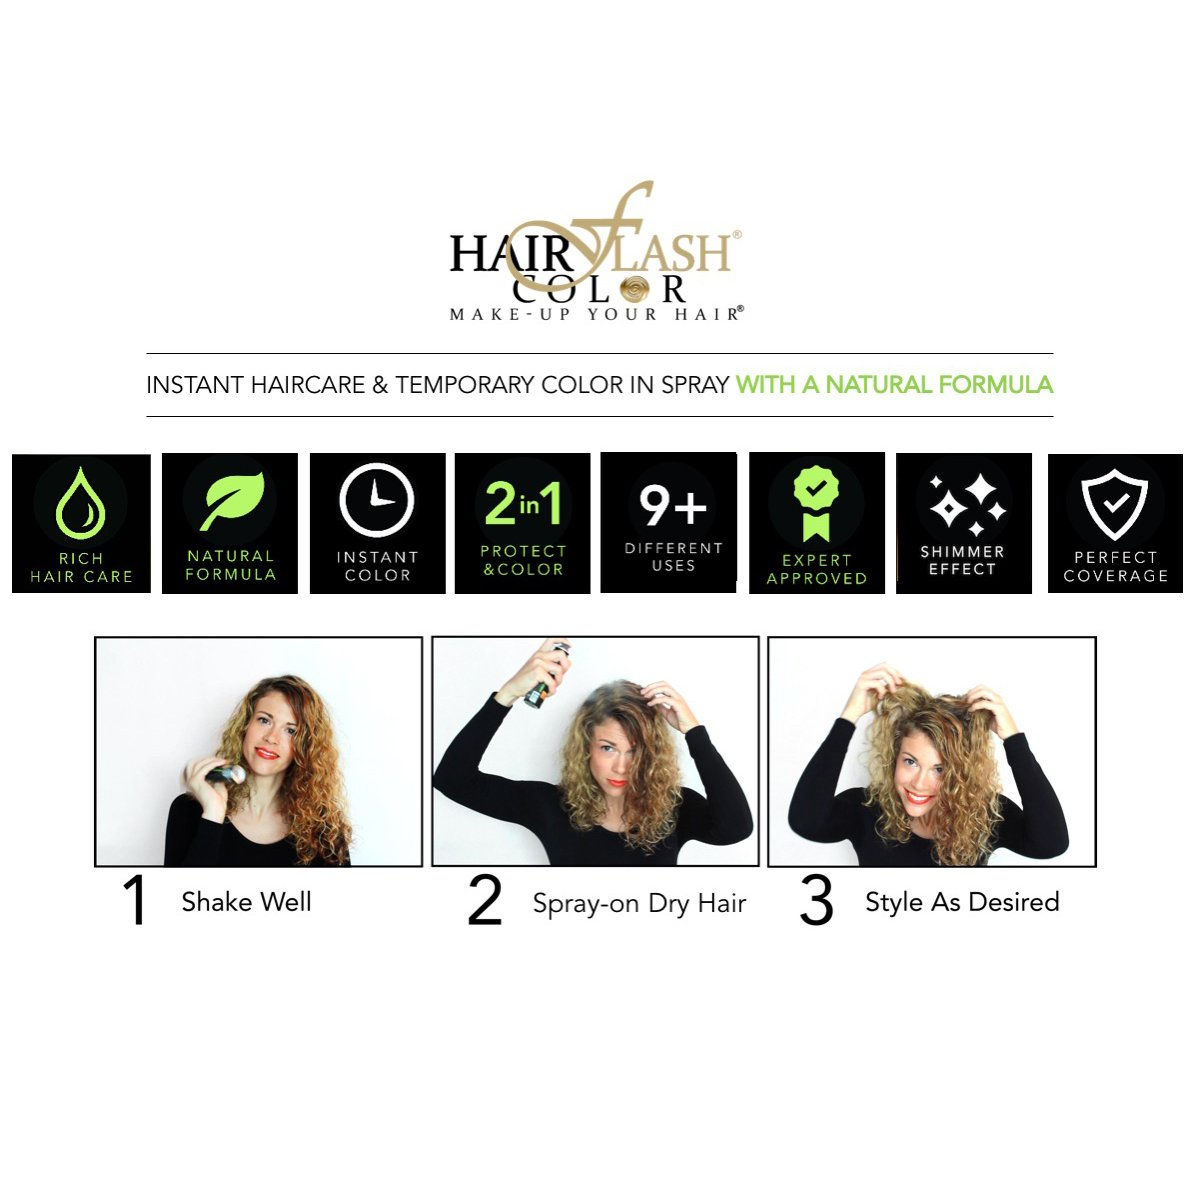 Amazon Hair Flash Color Natural Formula Make Up For Your Hair